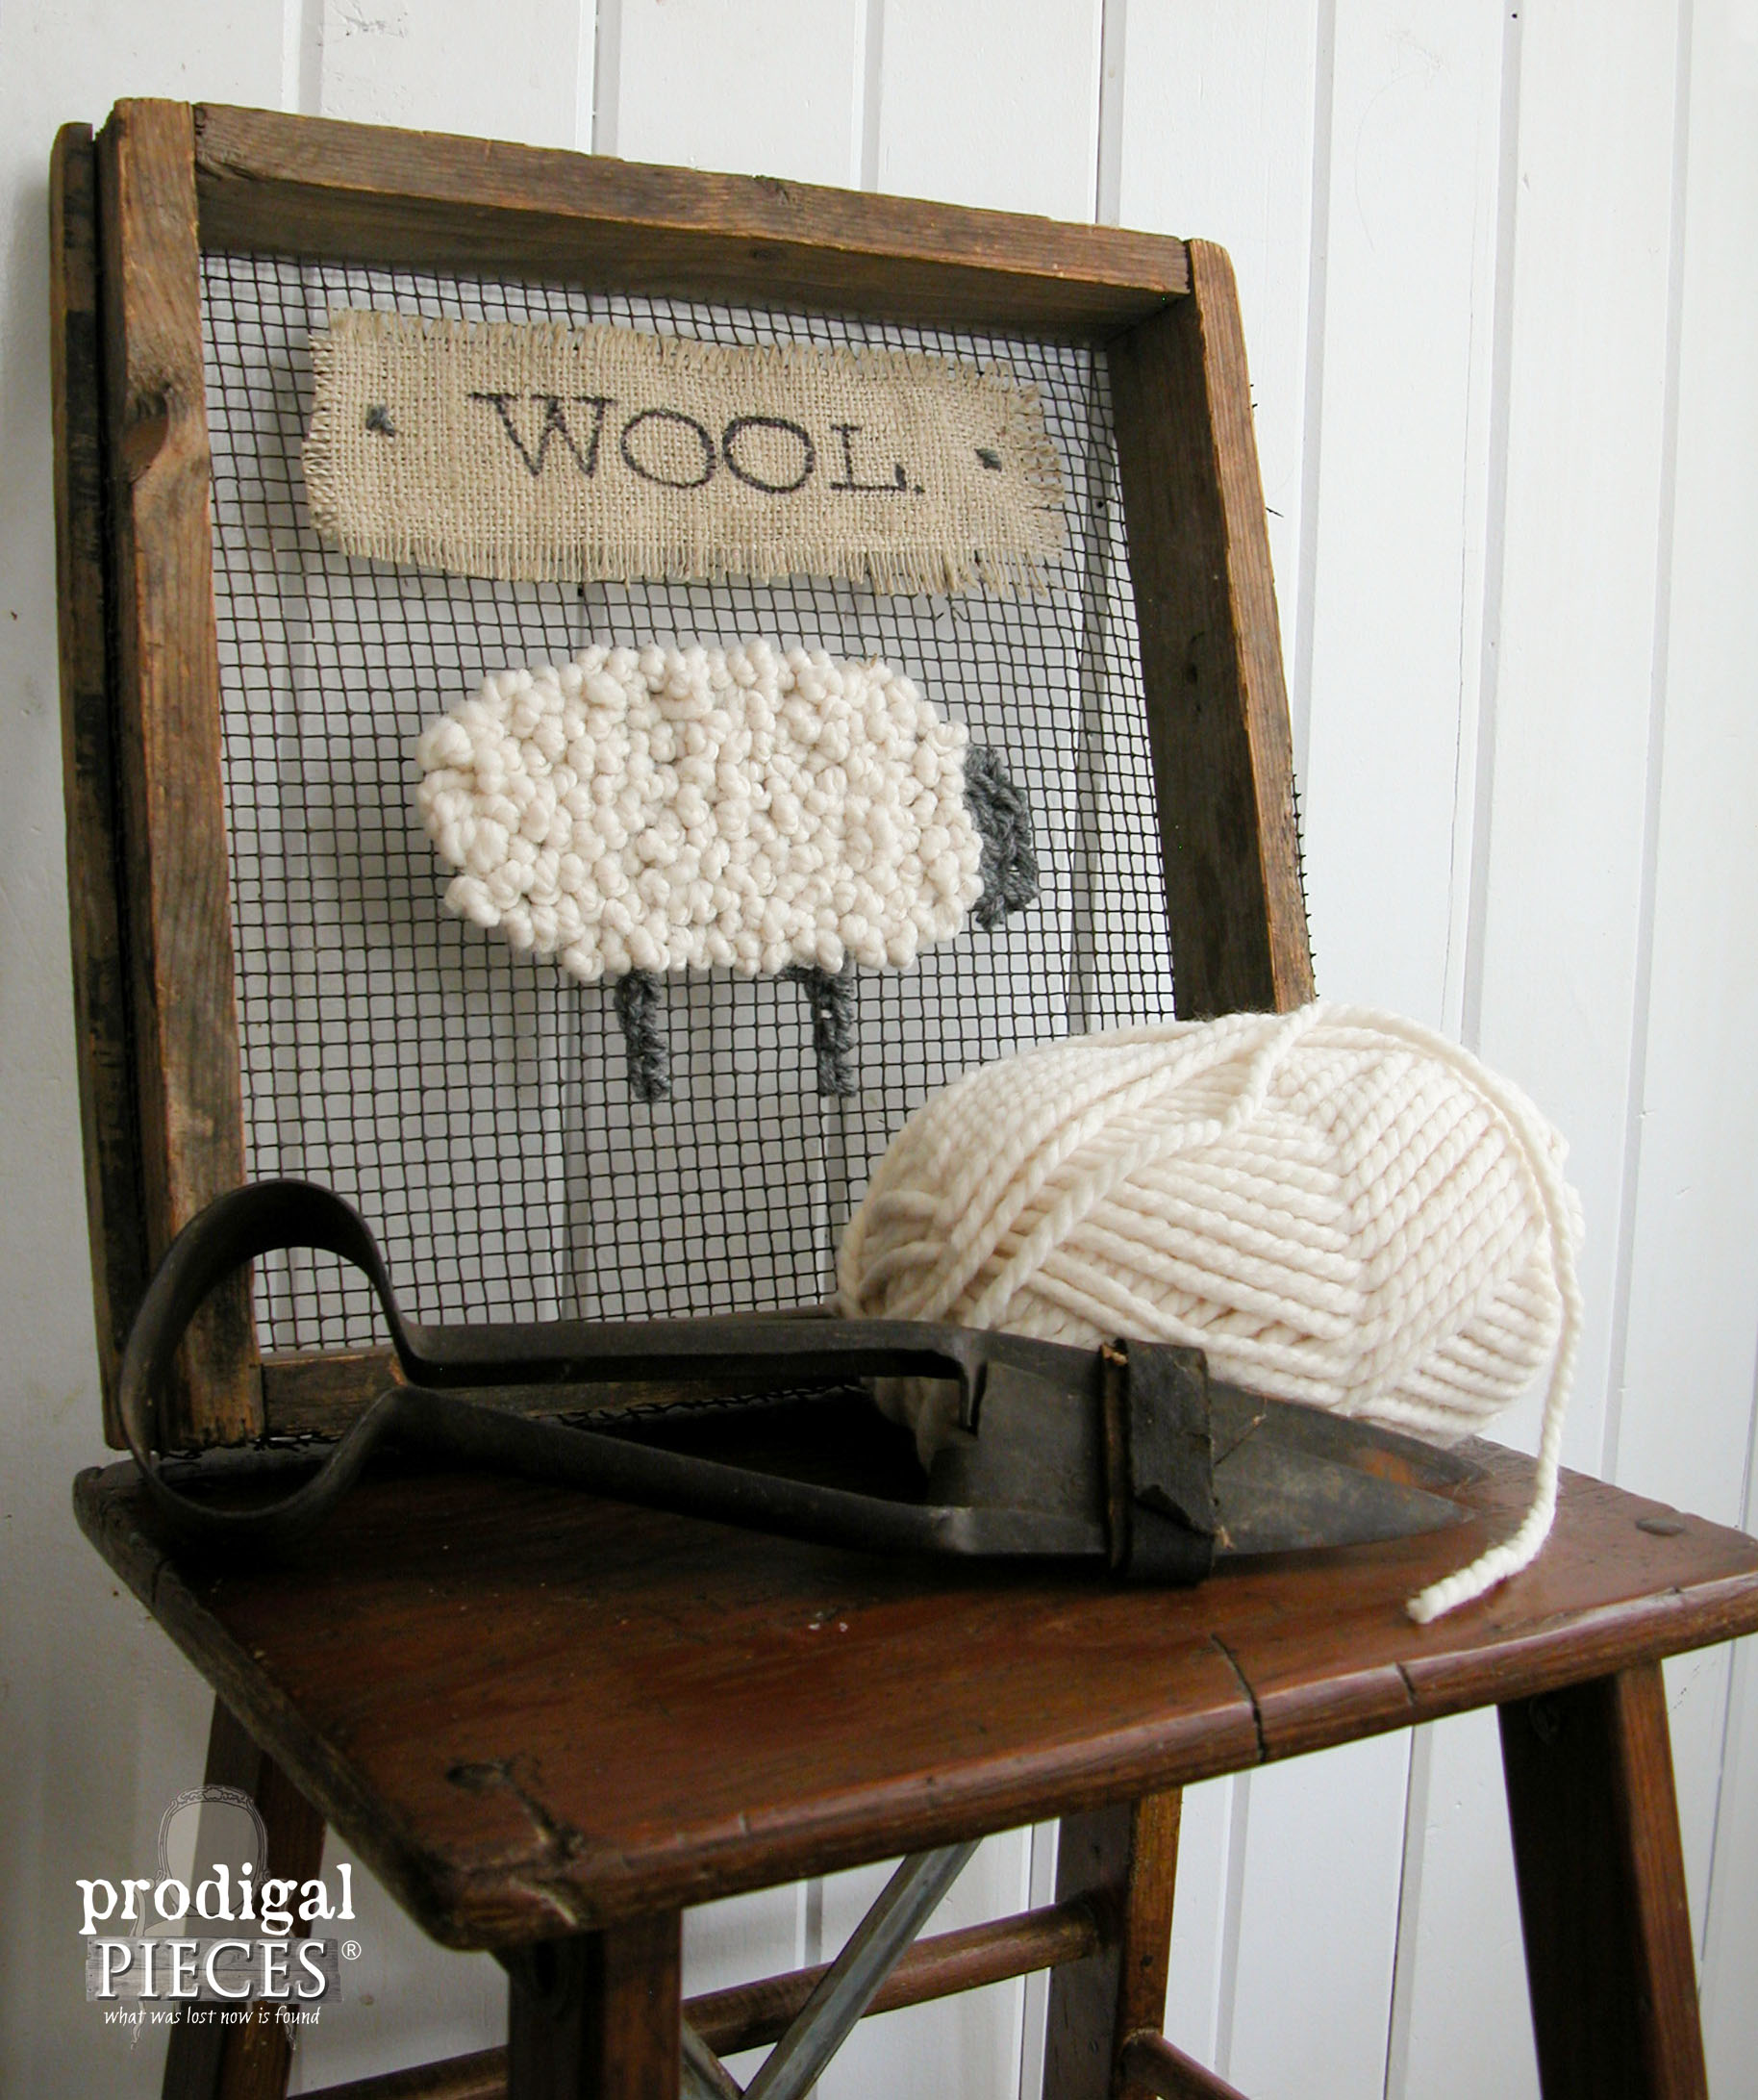 Side View Wooly Sheep Repurposed Art by Prodigal Pieces | www.prodigalpieces.com